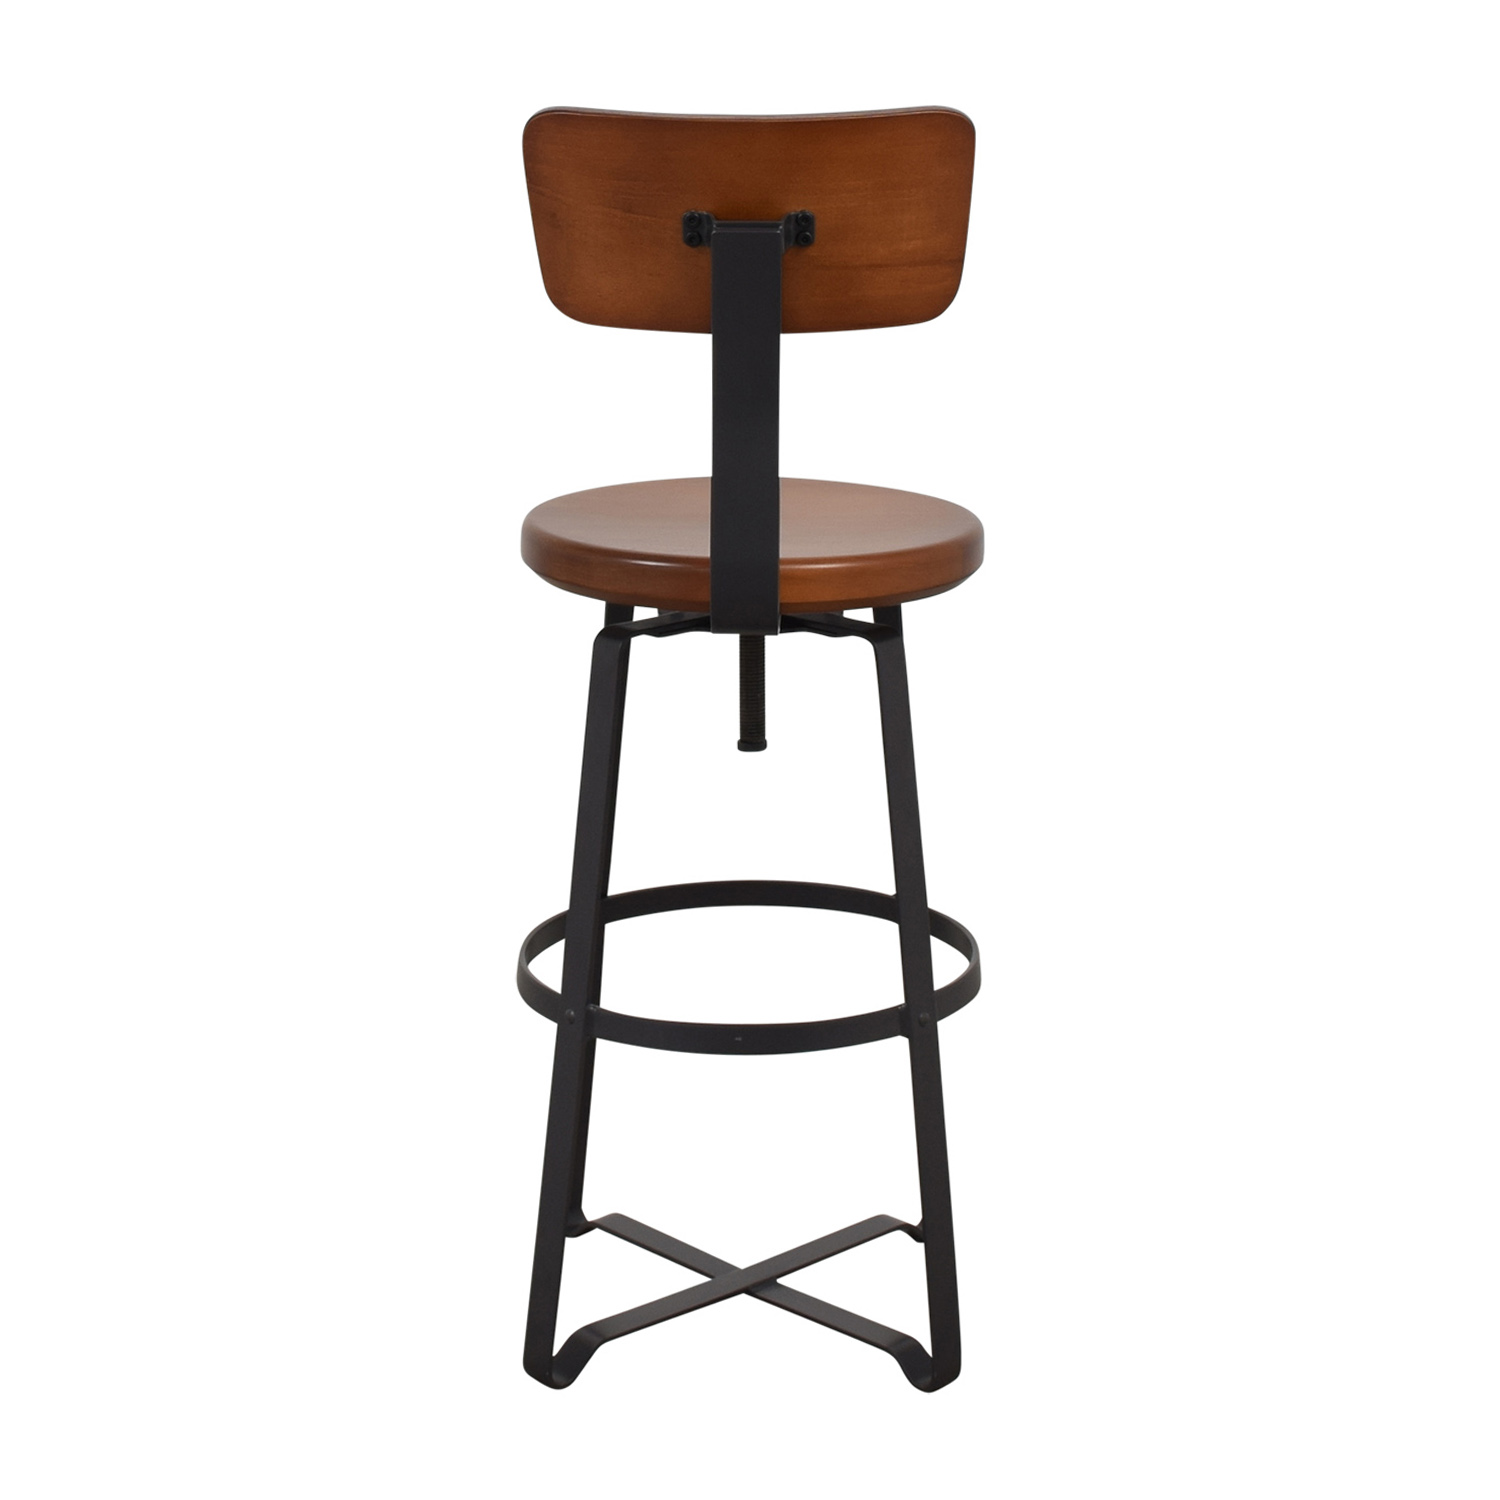 West Elm West Elm Adjustable Industrial Swivel Stool discount